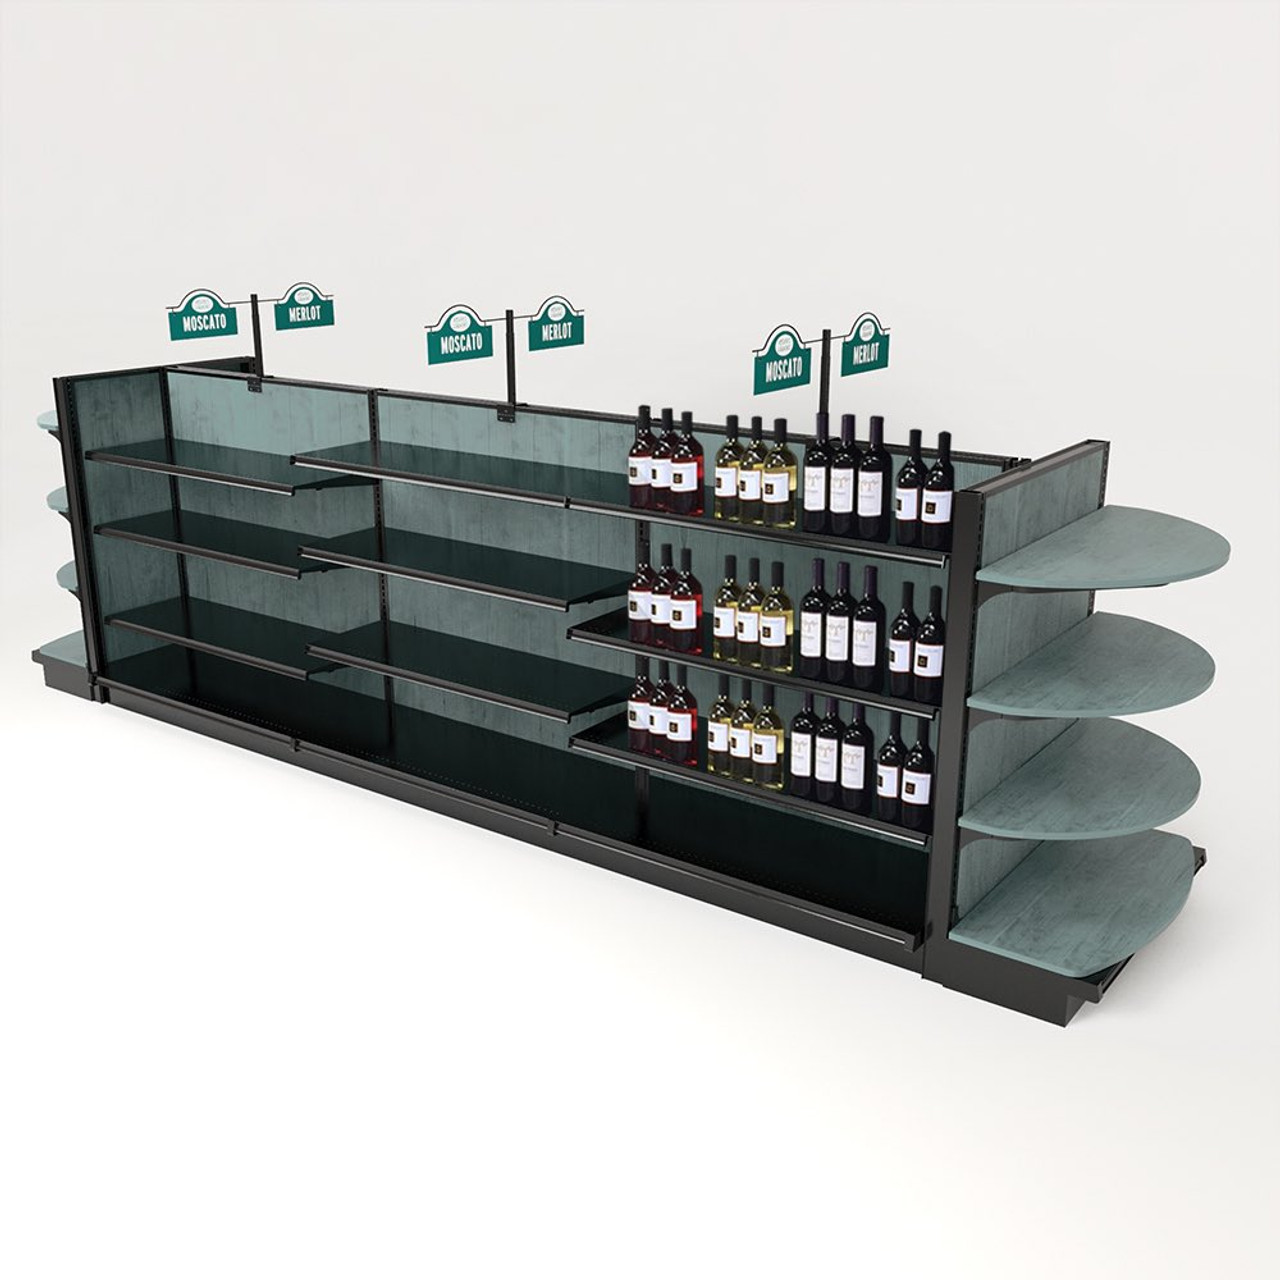 Wood Liquor Store Shelving w/End Caps Kit, 54H x 16ft Long